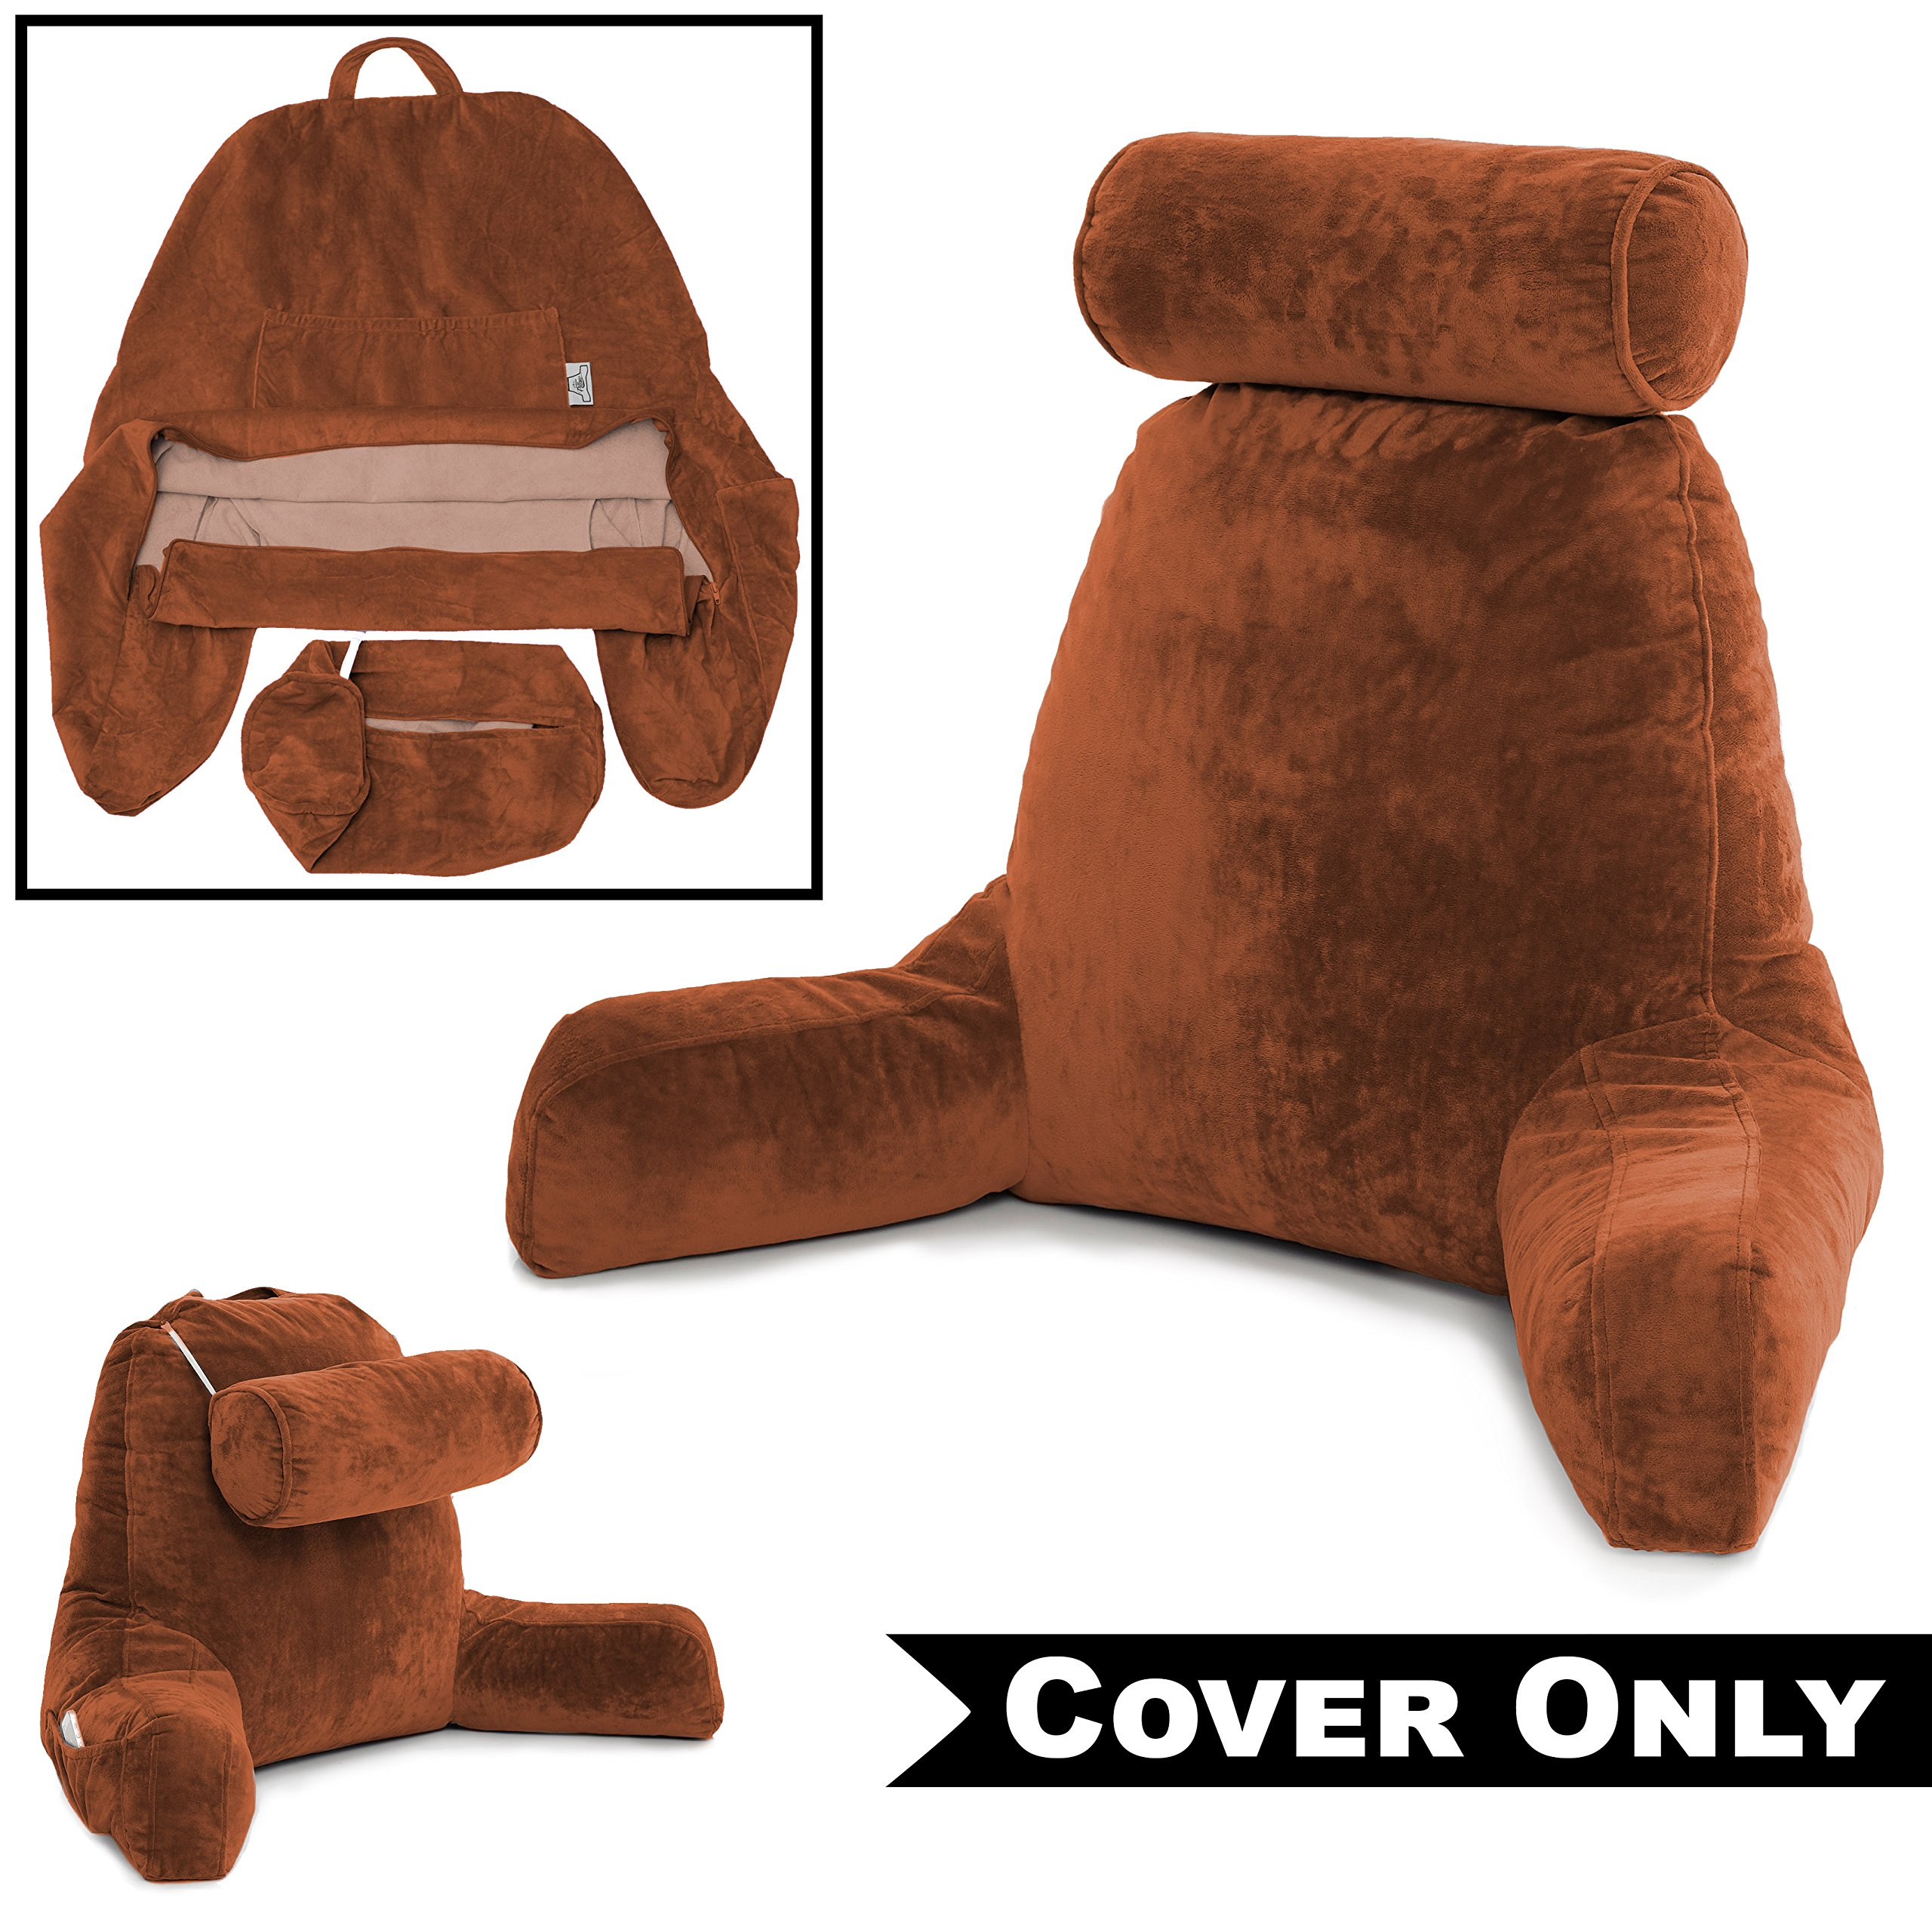 Husband Pillow Tan COVER ONLY - For the Bedrest Cover Set - Support Bed Backrest Cover, Microplush Cover Includes Detachable Neck Roll Pillow Cover